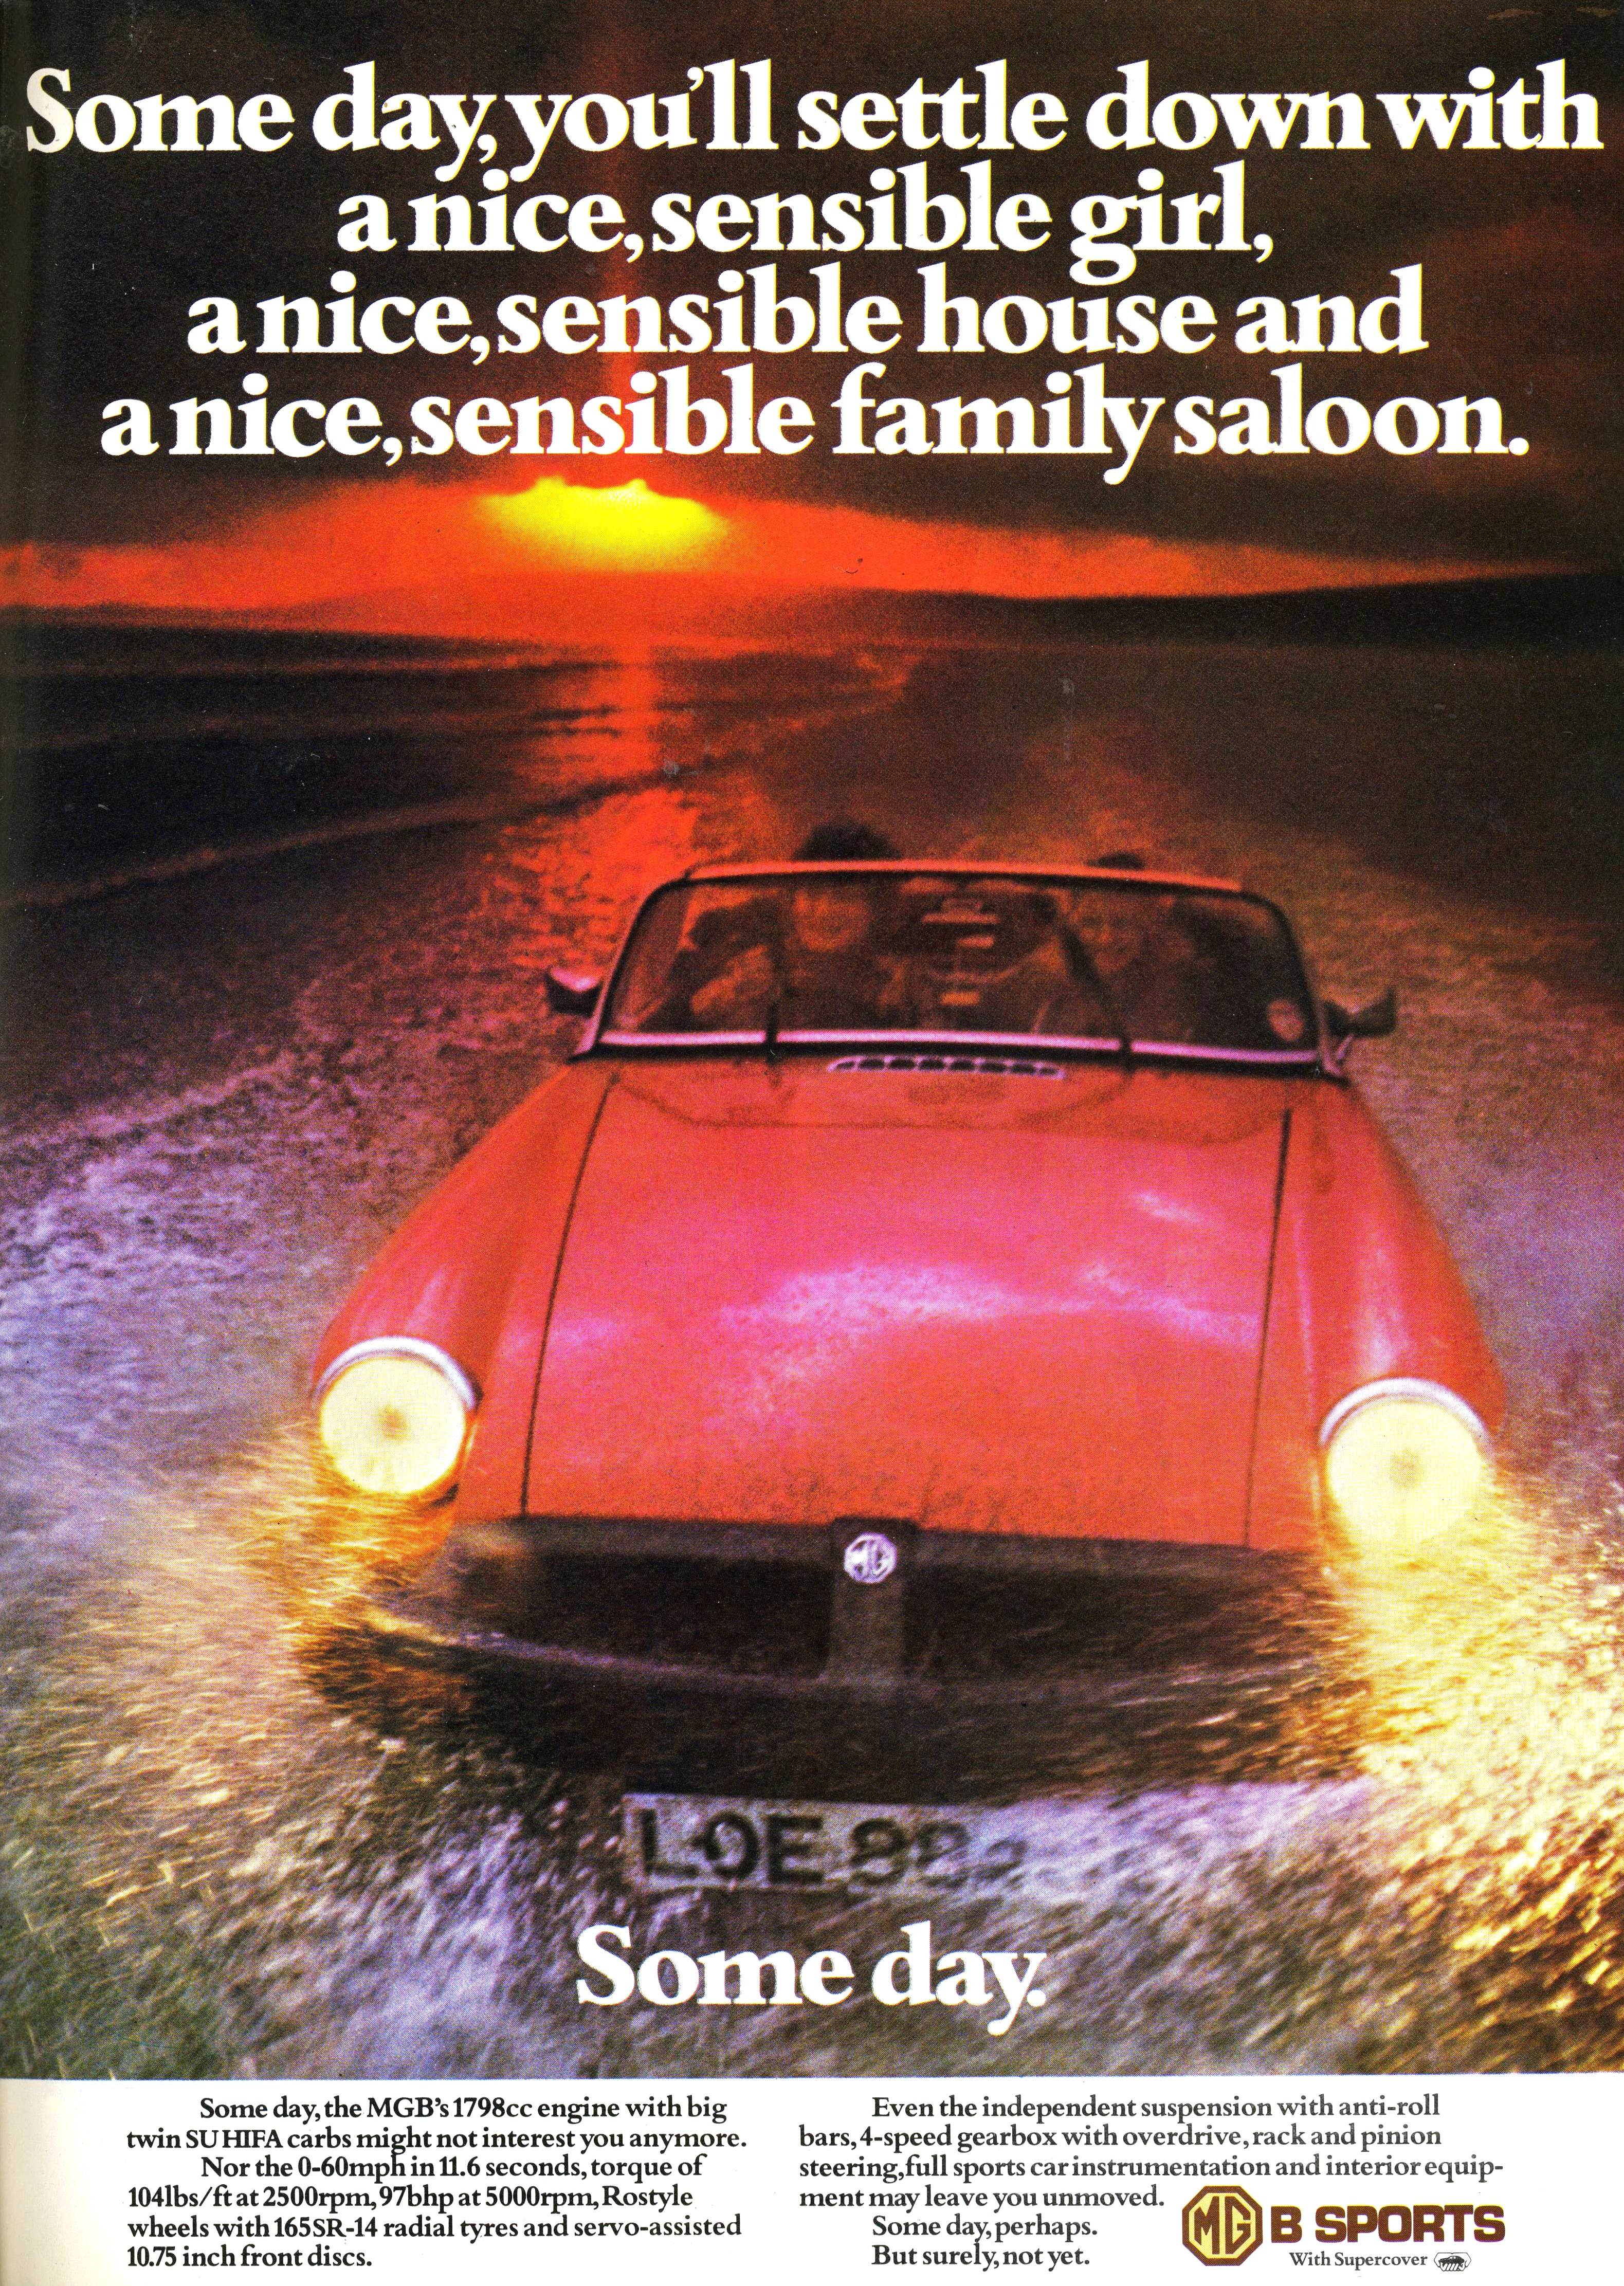 How To Get A Free Car From The Government >> Derek 'Red Robbo' Robinson and the Fall of British Leyland - Flashbak